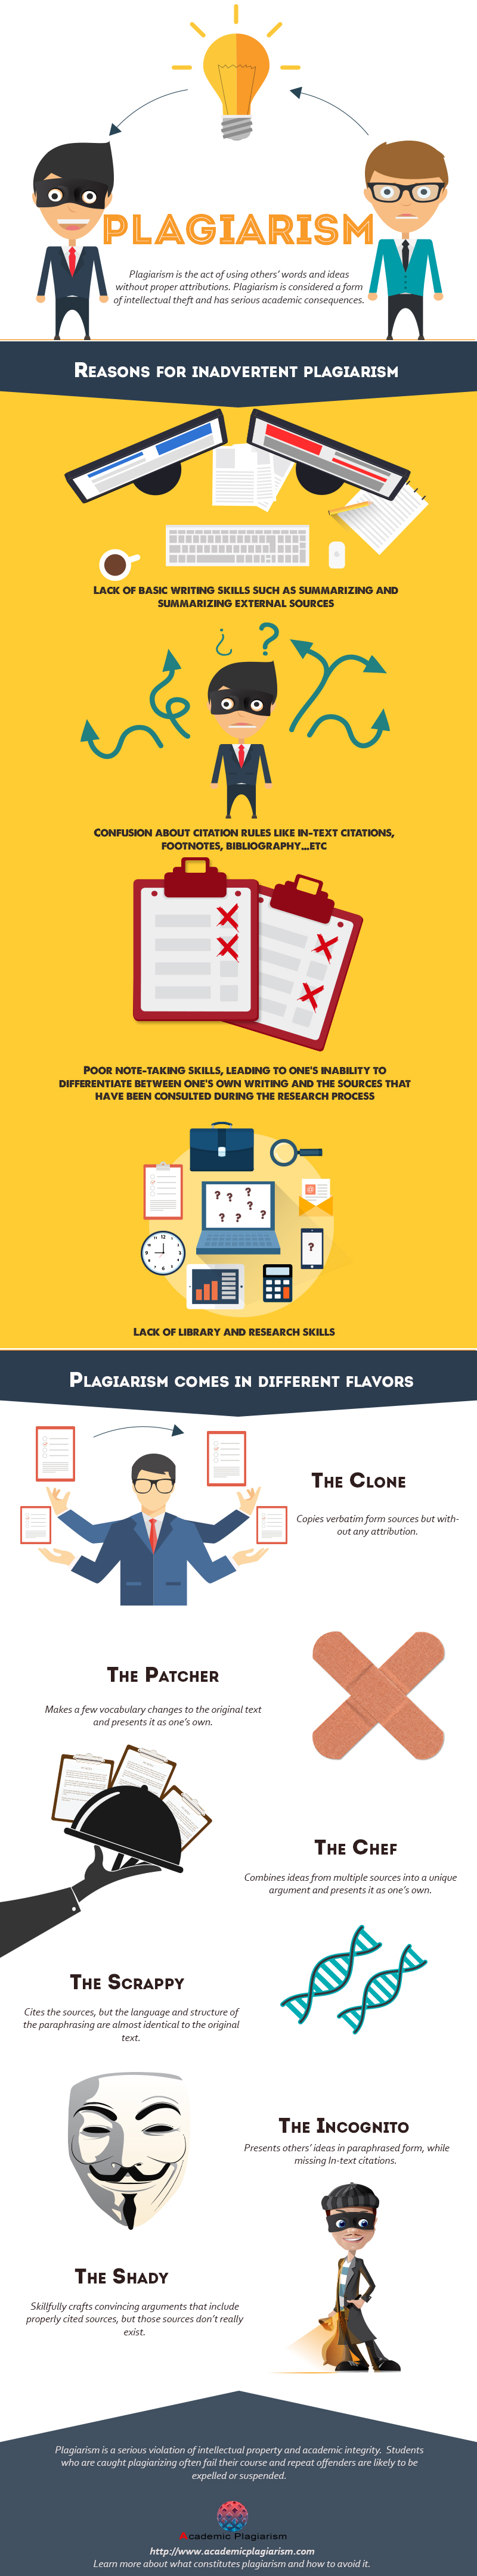 What is plagiarism: Infographic